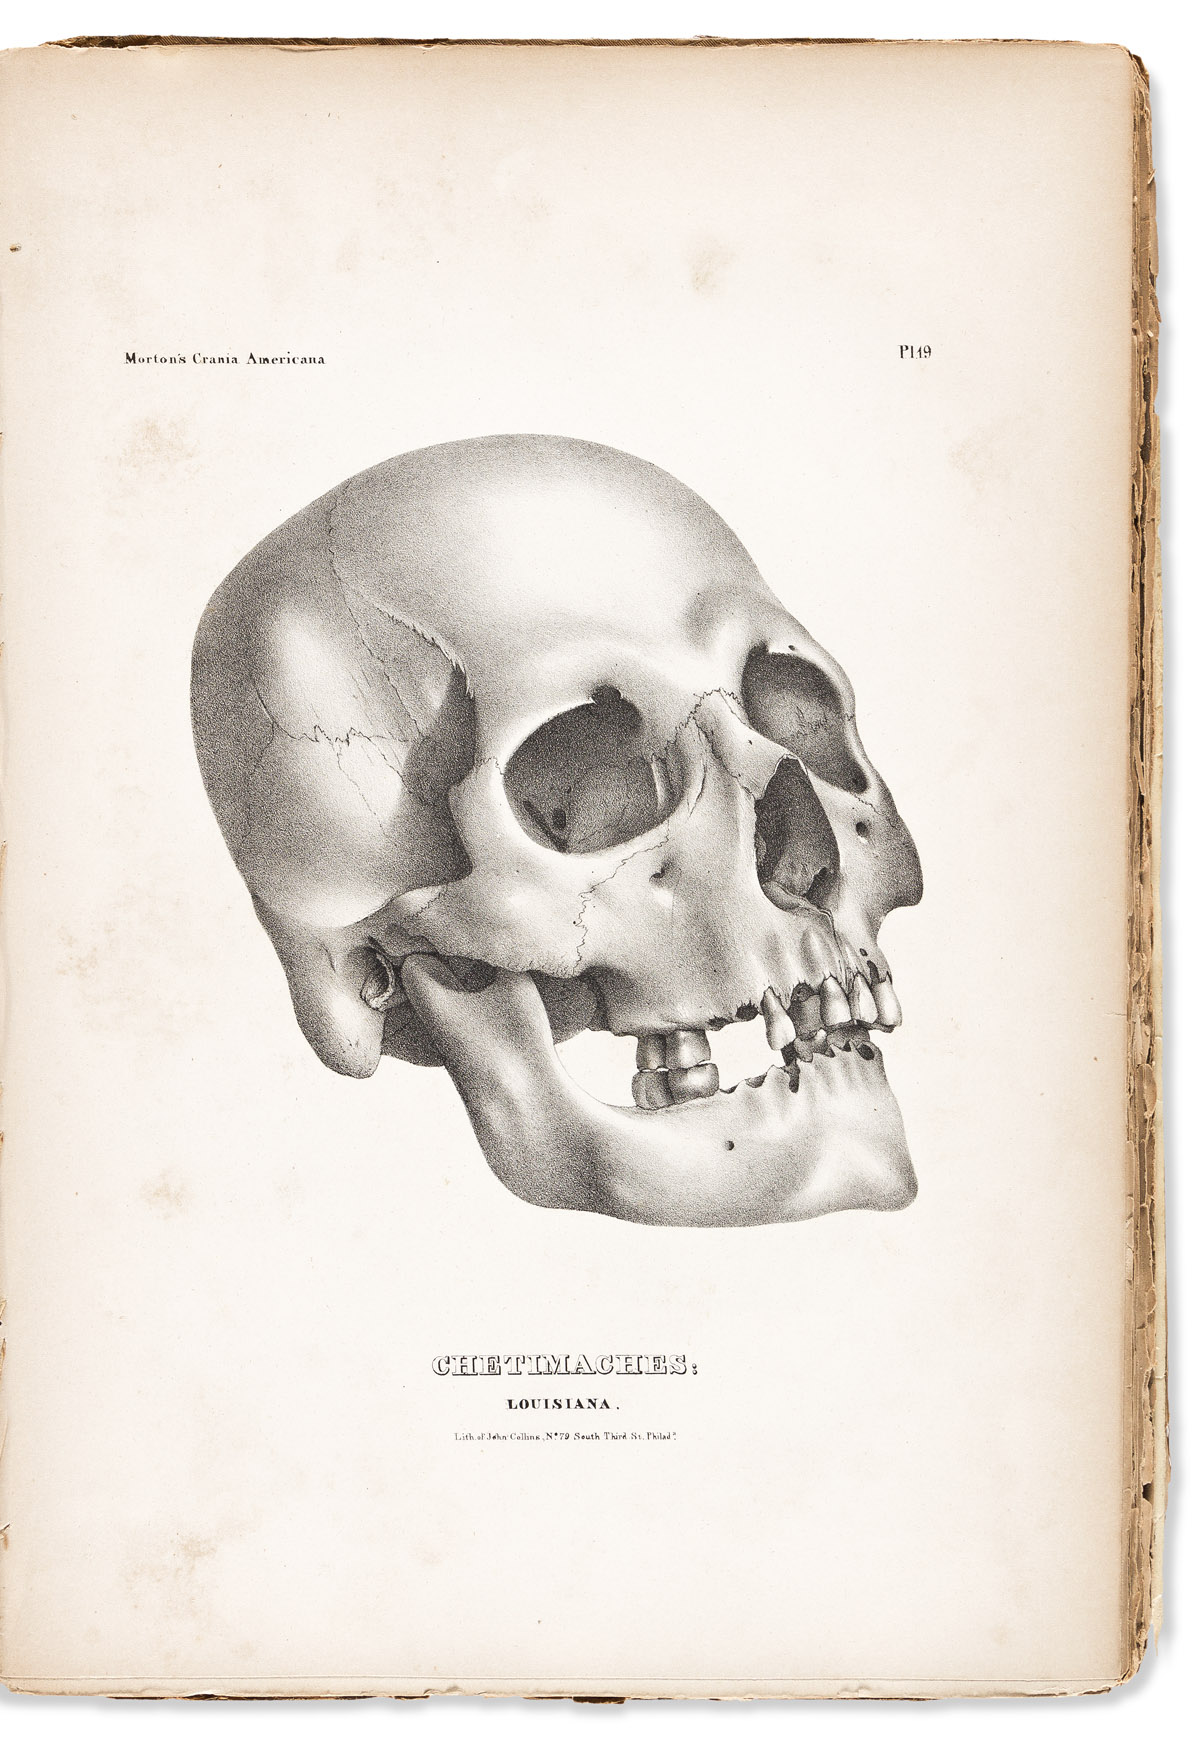 (AMERICAN INDIANS.) Samuel George Morton. Crania Americana; or, A Comparative View of the Skulls of Various Aboriginal Nations